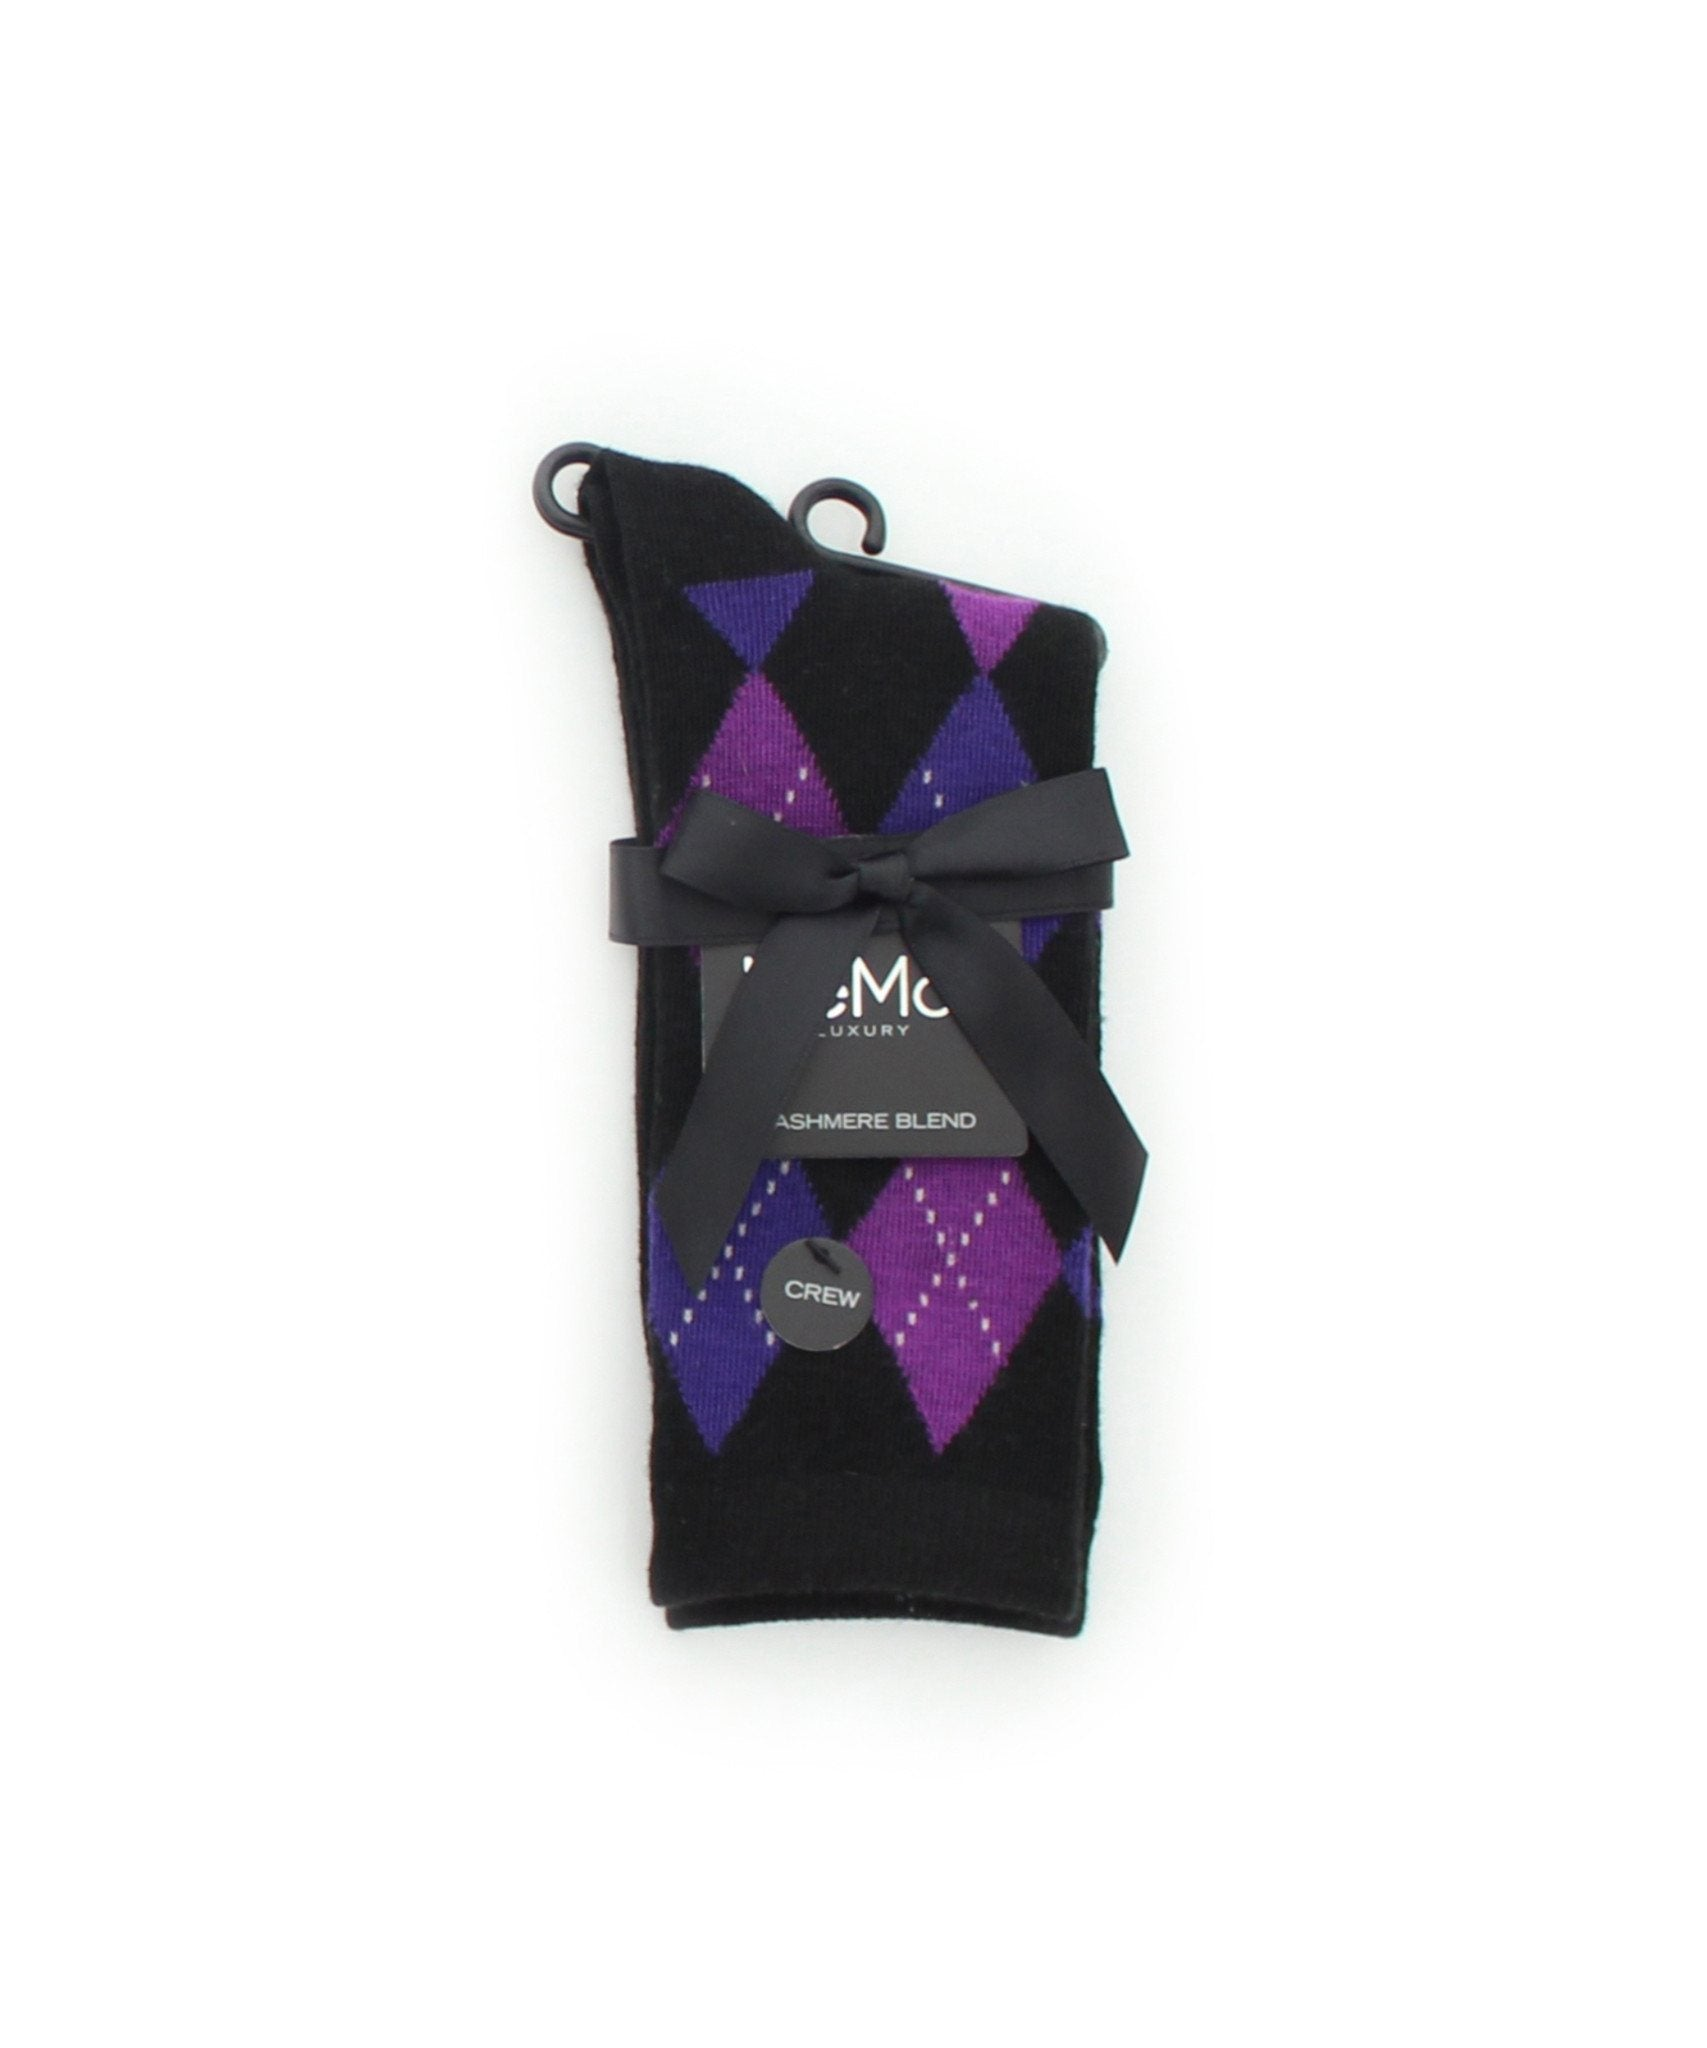 Alternate Diamonds Cashmere Blend Crew Socks - MeMoi - 1